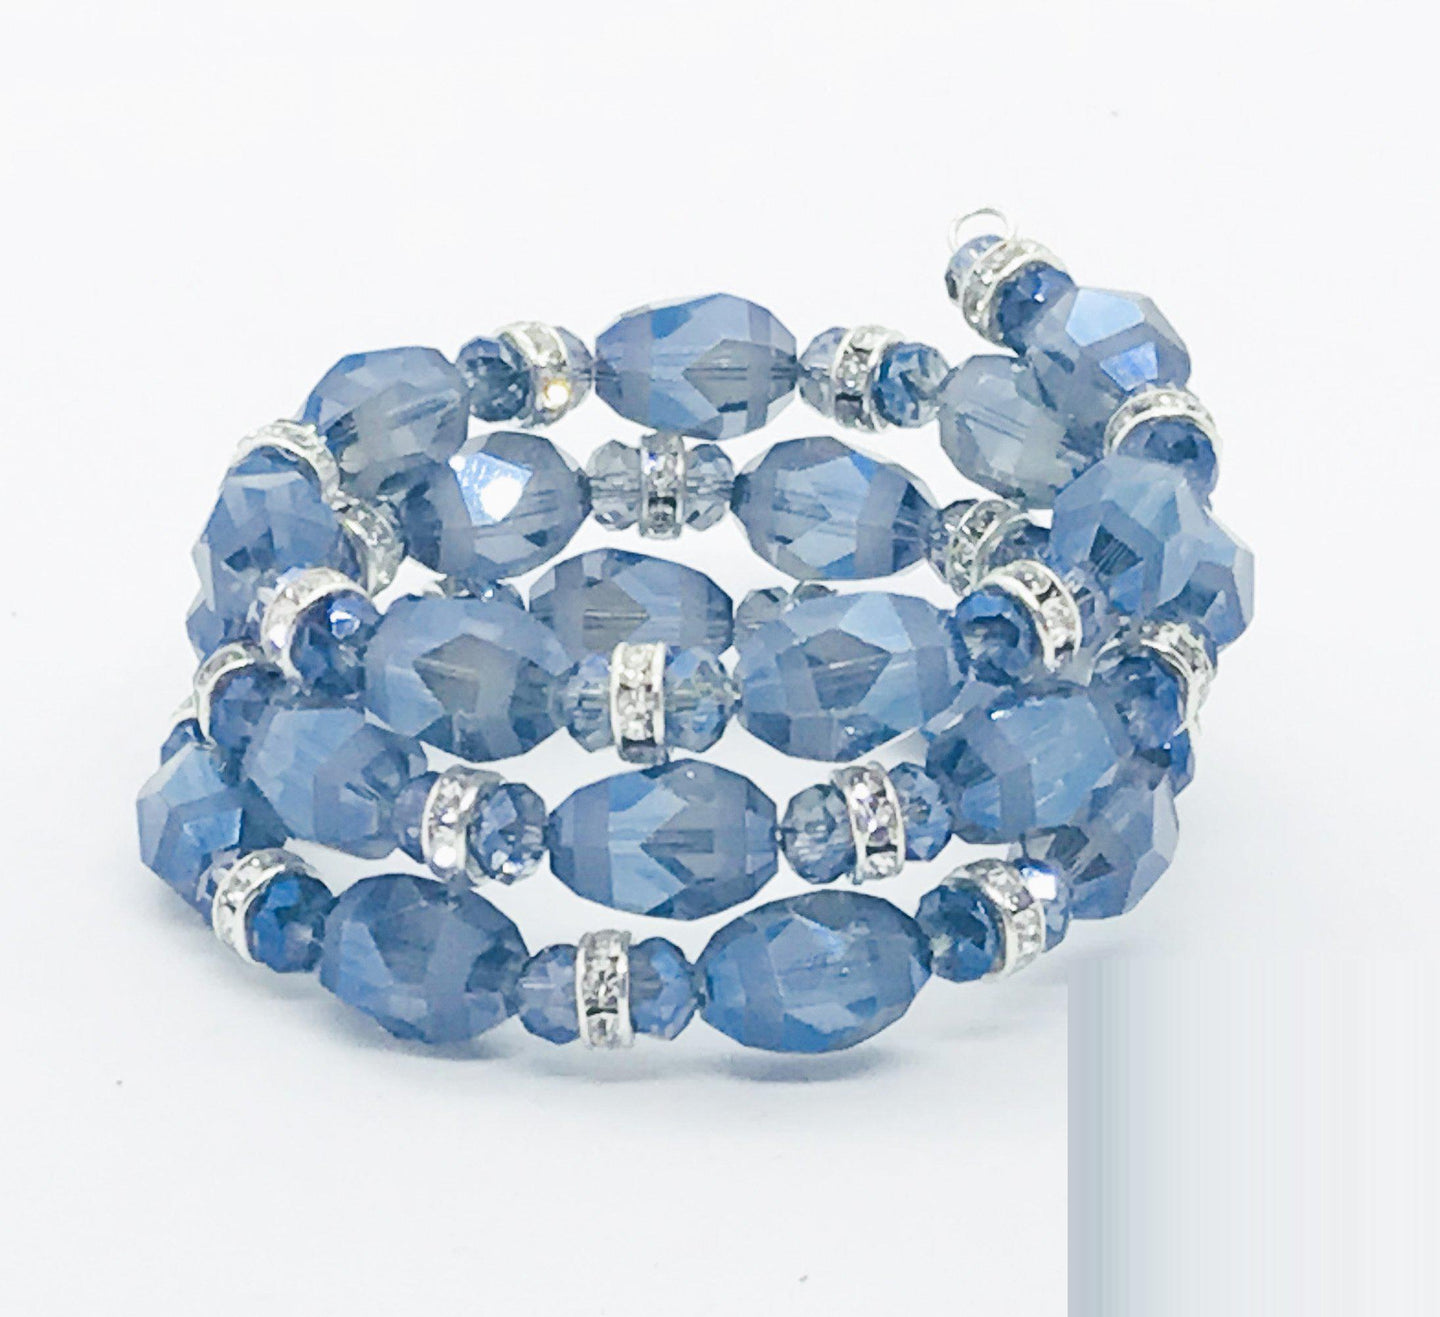 Glass Bead Wrap Bracelet - MB306